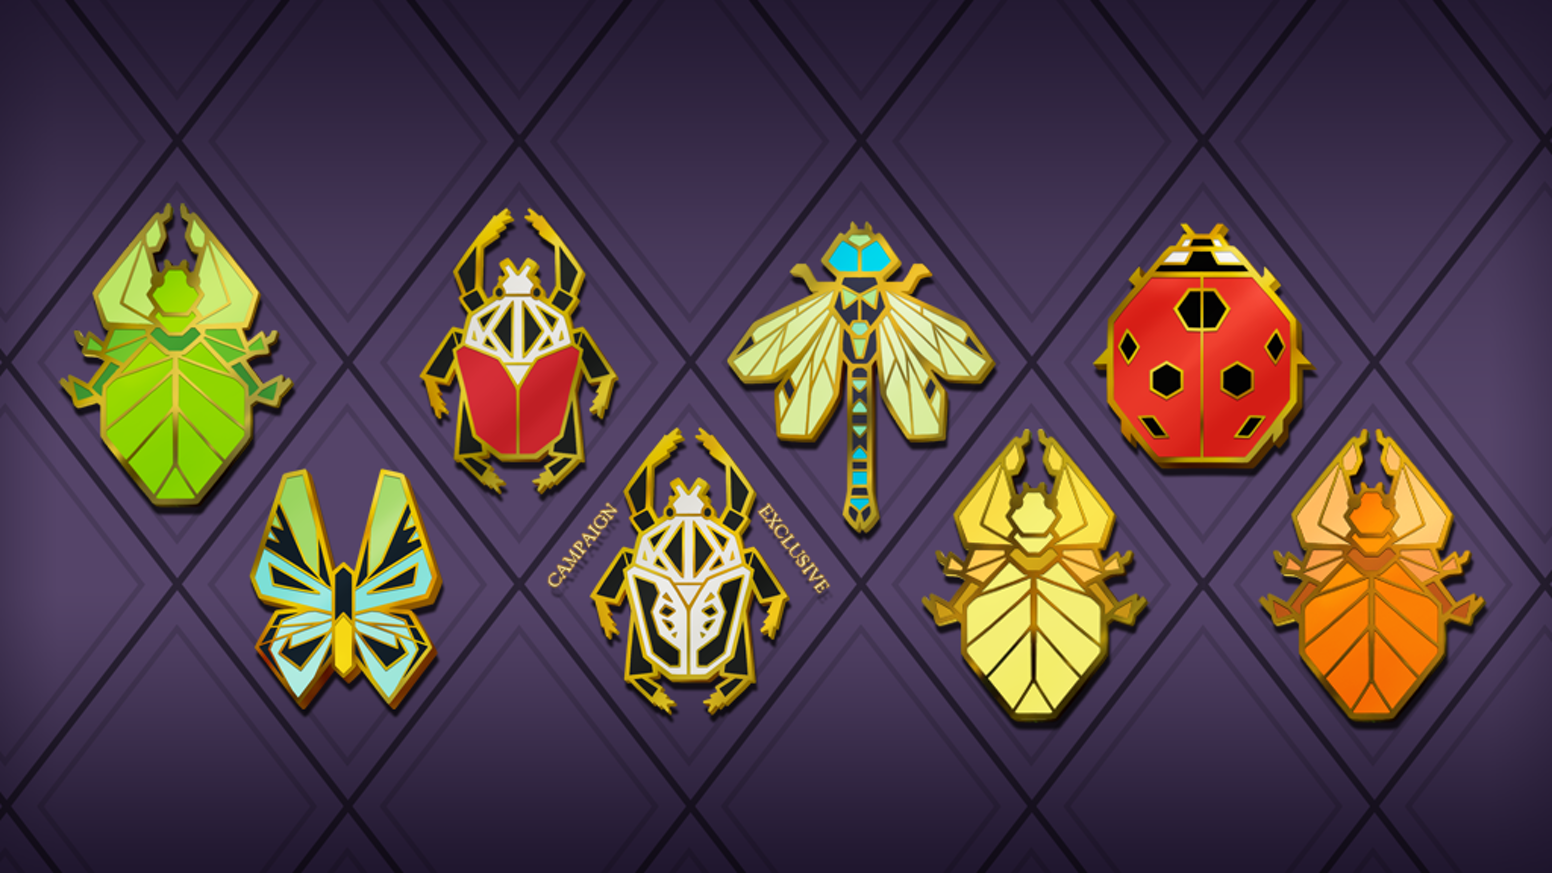 A second round of geometric insect pins in hard enamel - eyecatching and beautiful designs inspired by real species!